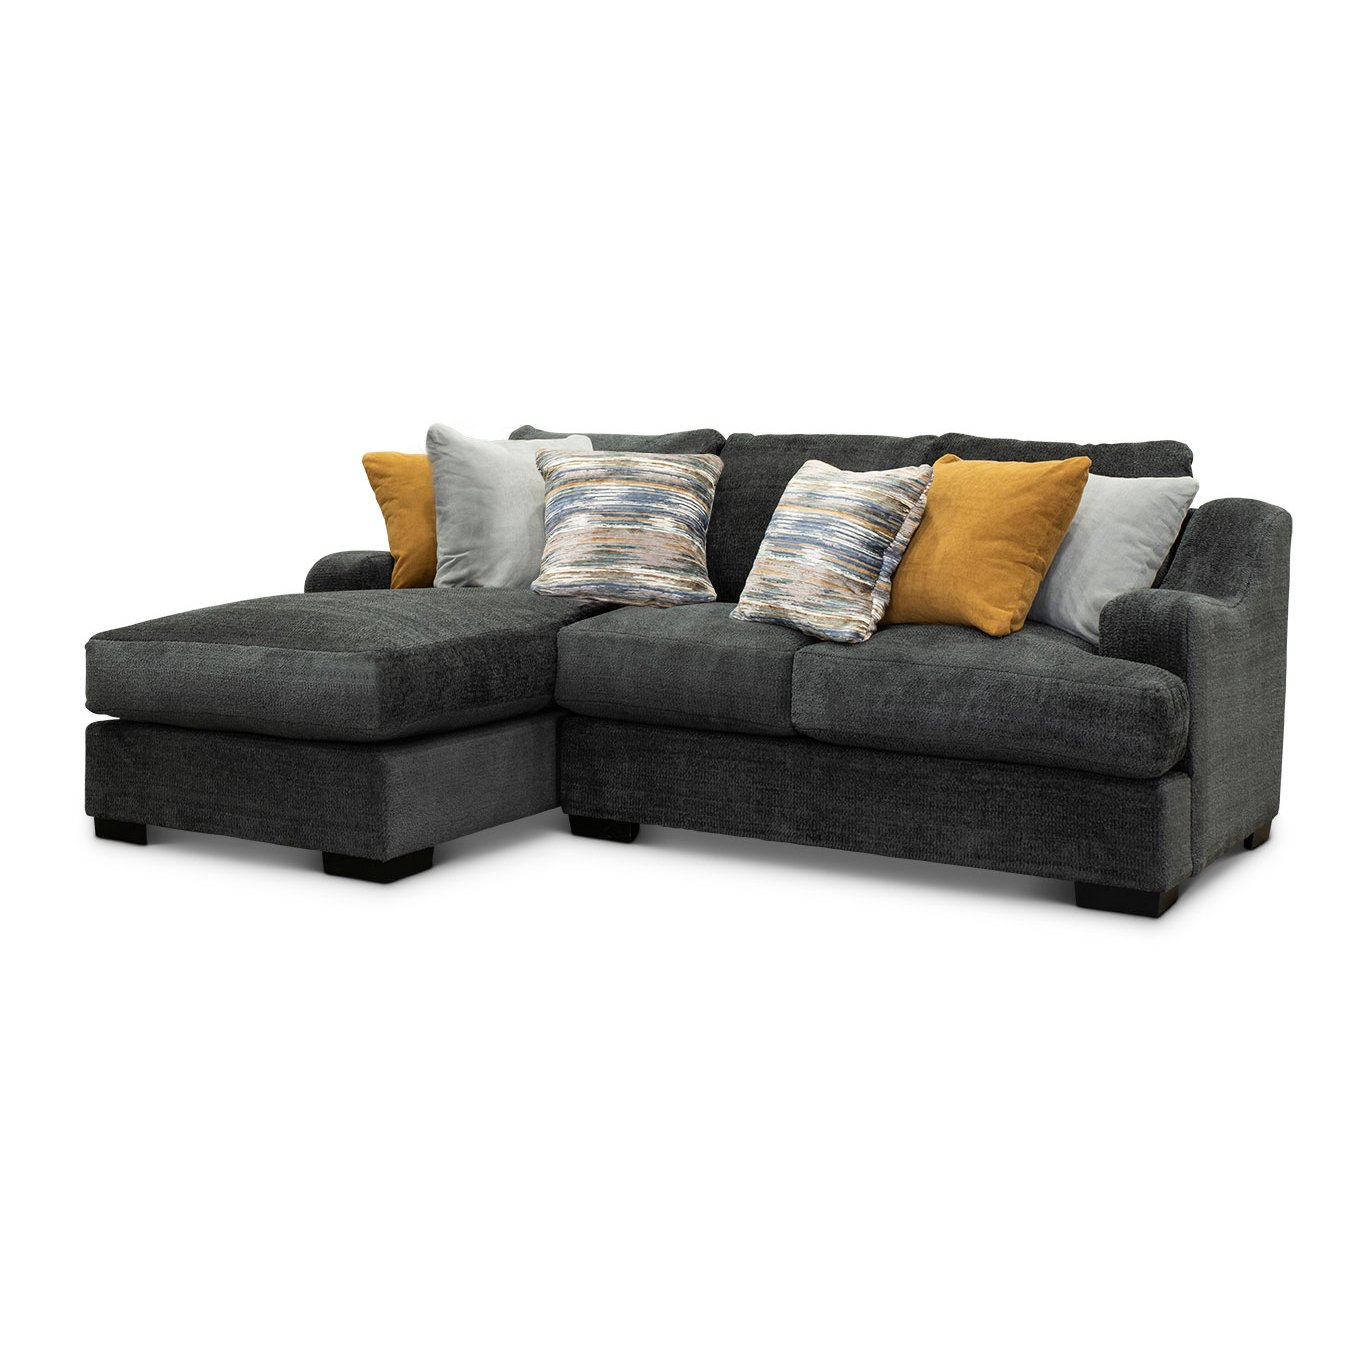 Gray 2 Piece Sectional Sofa With Laf Chaise Challenger Rc Willey Furniture Store